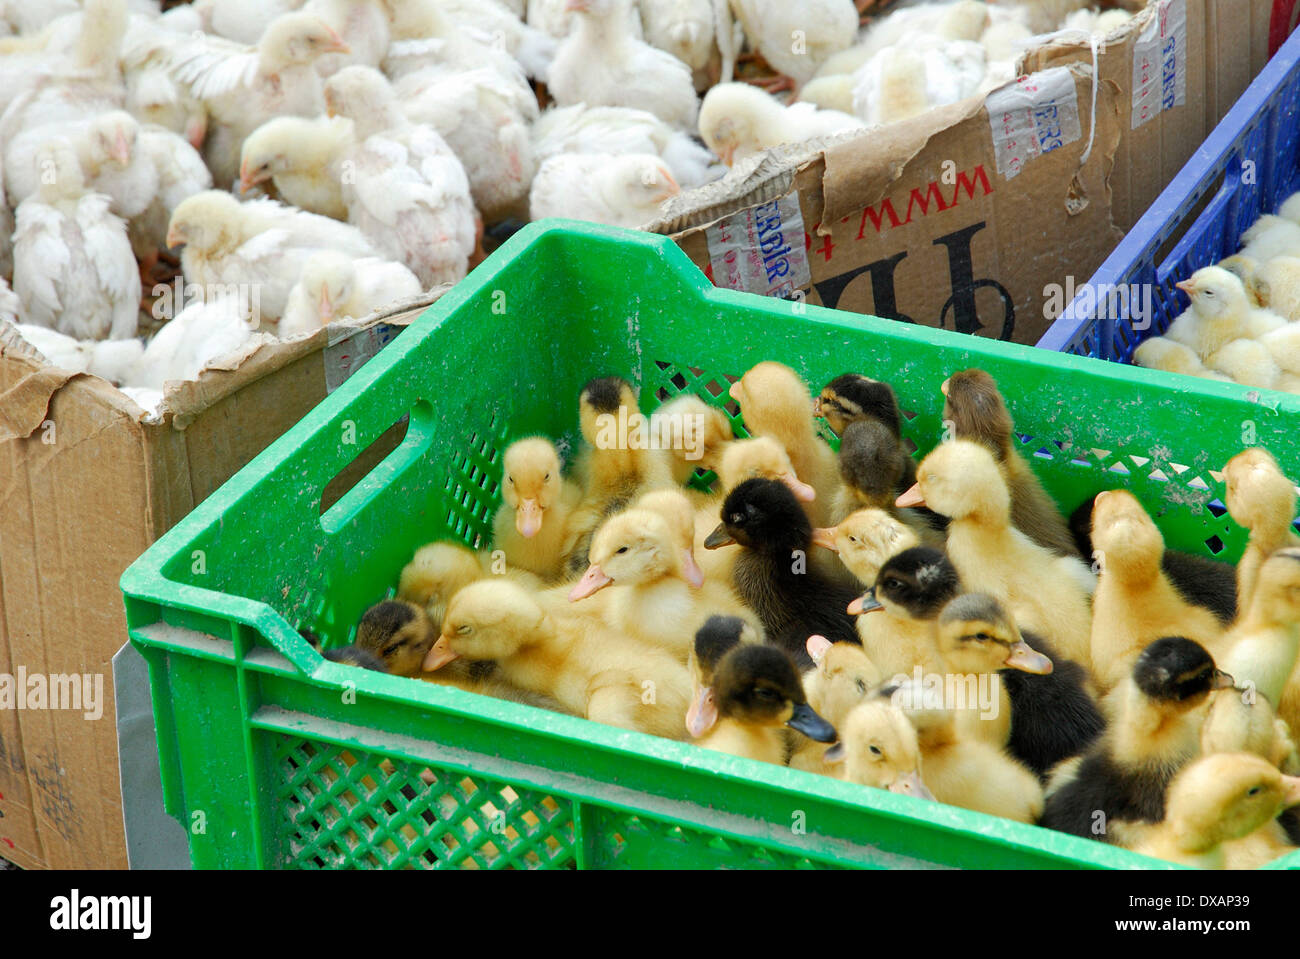 Chicks and Ducklings - Stock Image